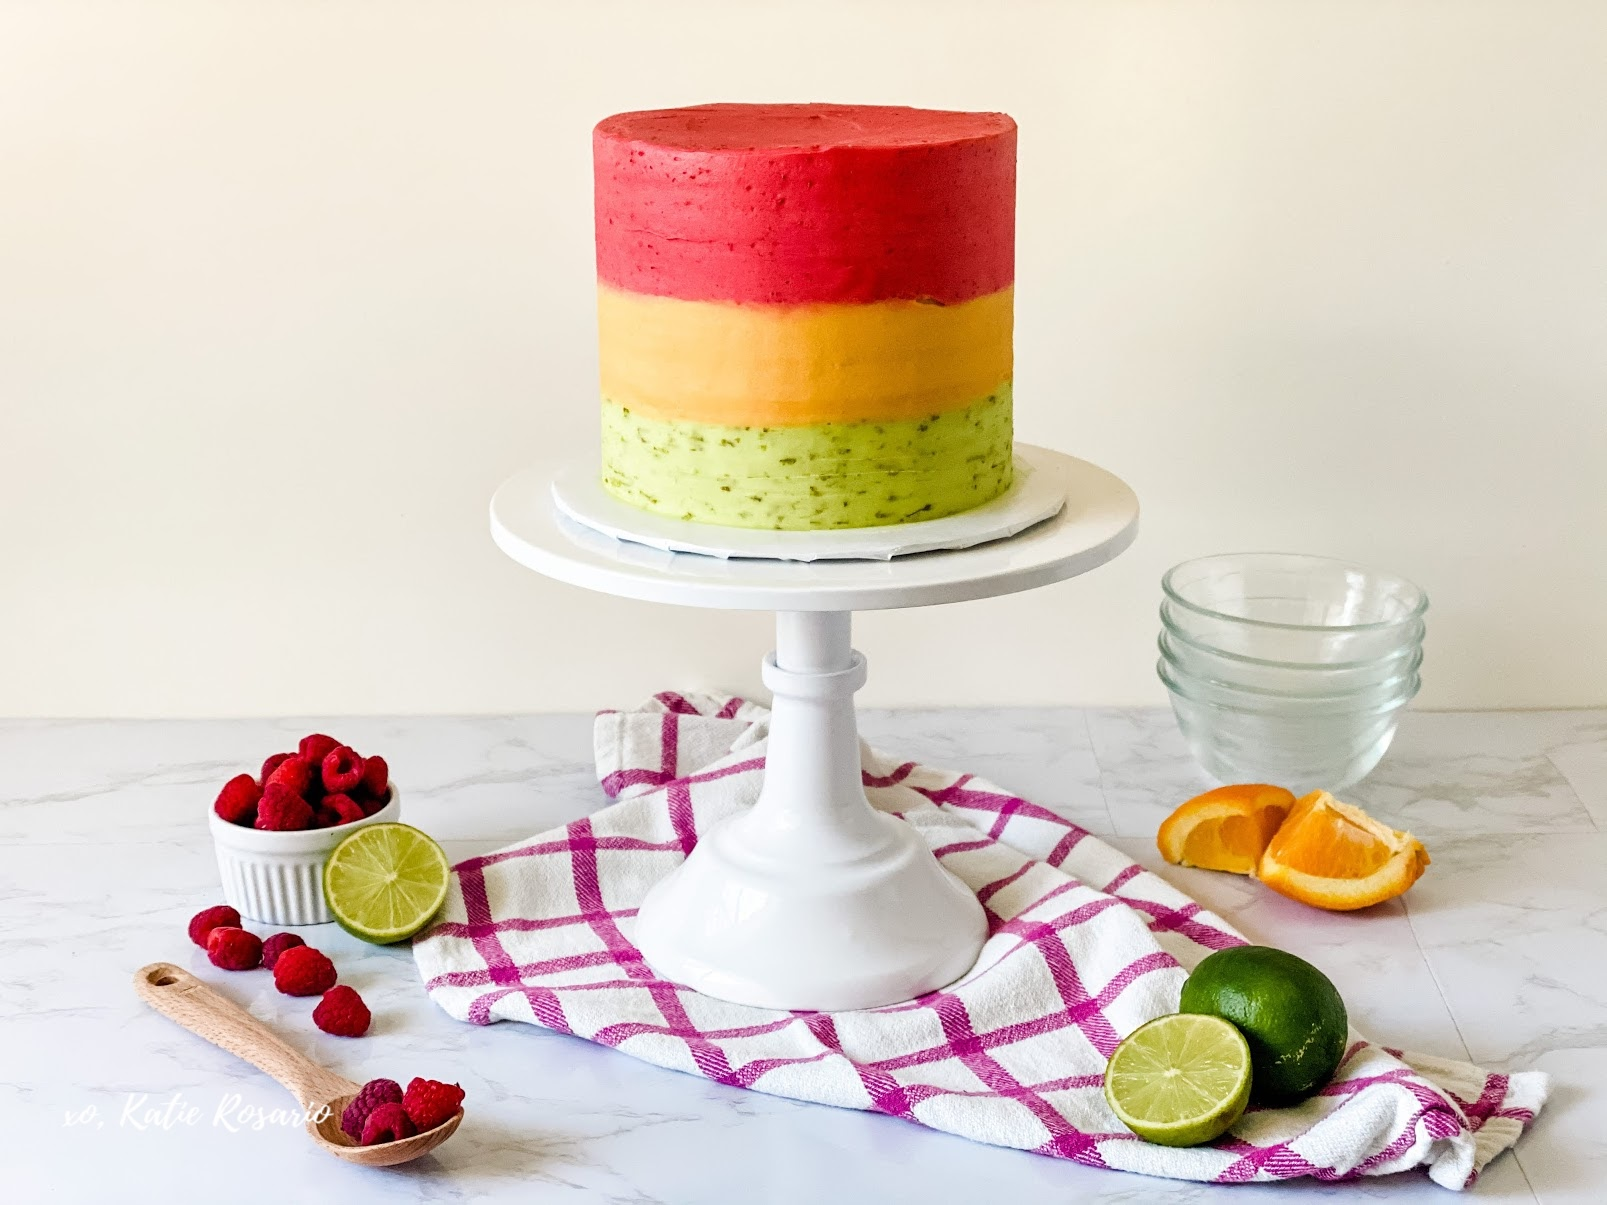 Rainbow Sherbet Cake that tastes just like your favorite summer ice cream. This Rainbow Sherbet Cake is made up of raspberry, orange, and lime cake, and buttercream. Created by Katie Rosario, XOKatieRosario creates beautiful cake decorating techniques that are easy for beginners and strategically designed for any home baker. #xokatierosario.com #cakedecoratingcourse #xokatierosario #katierosariocakes #rainbowsherbet #rainbowcake #rainbowshertbetcake